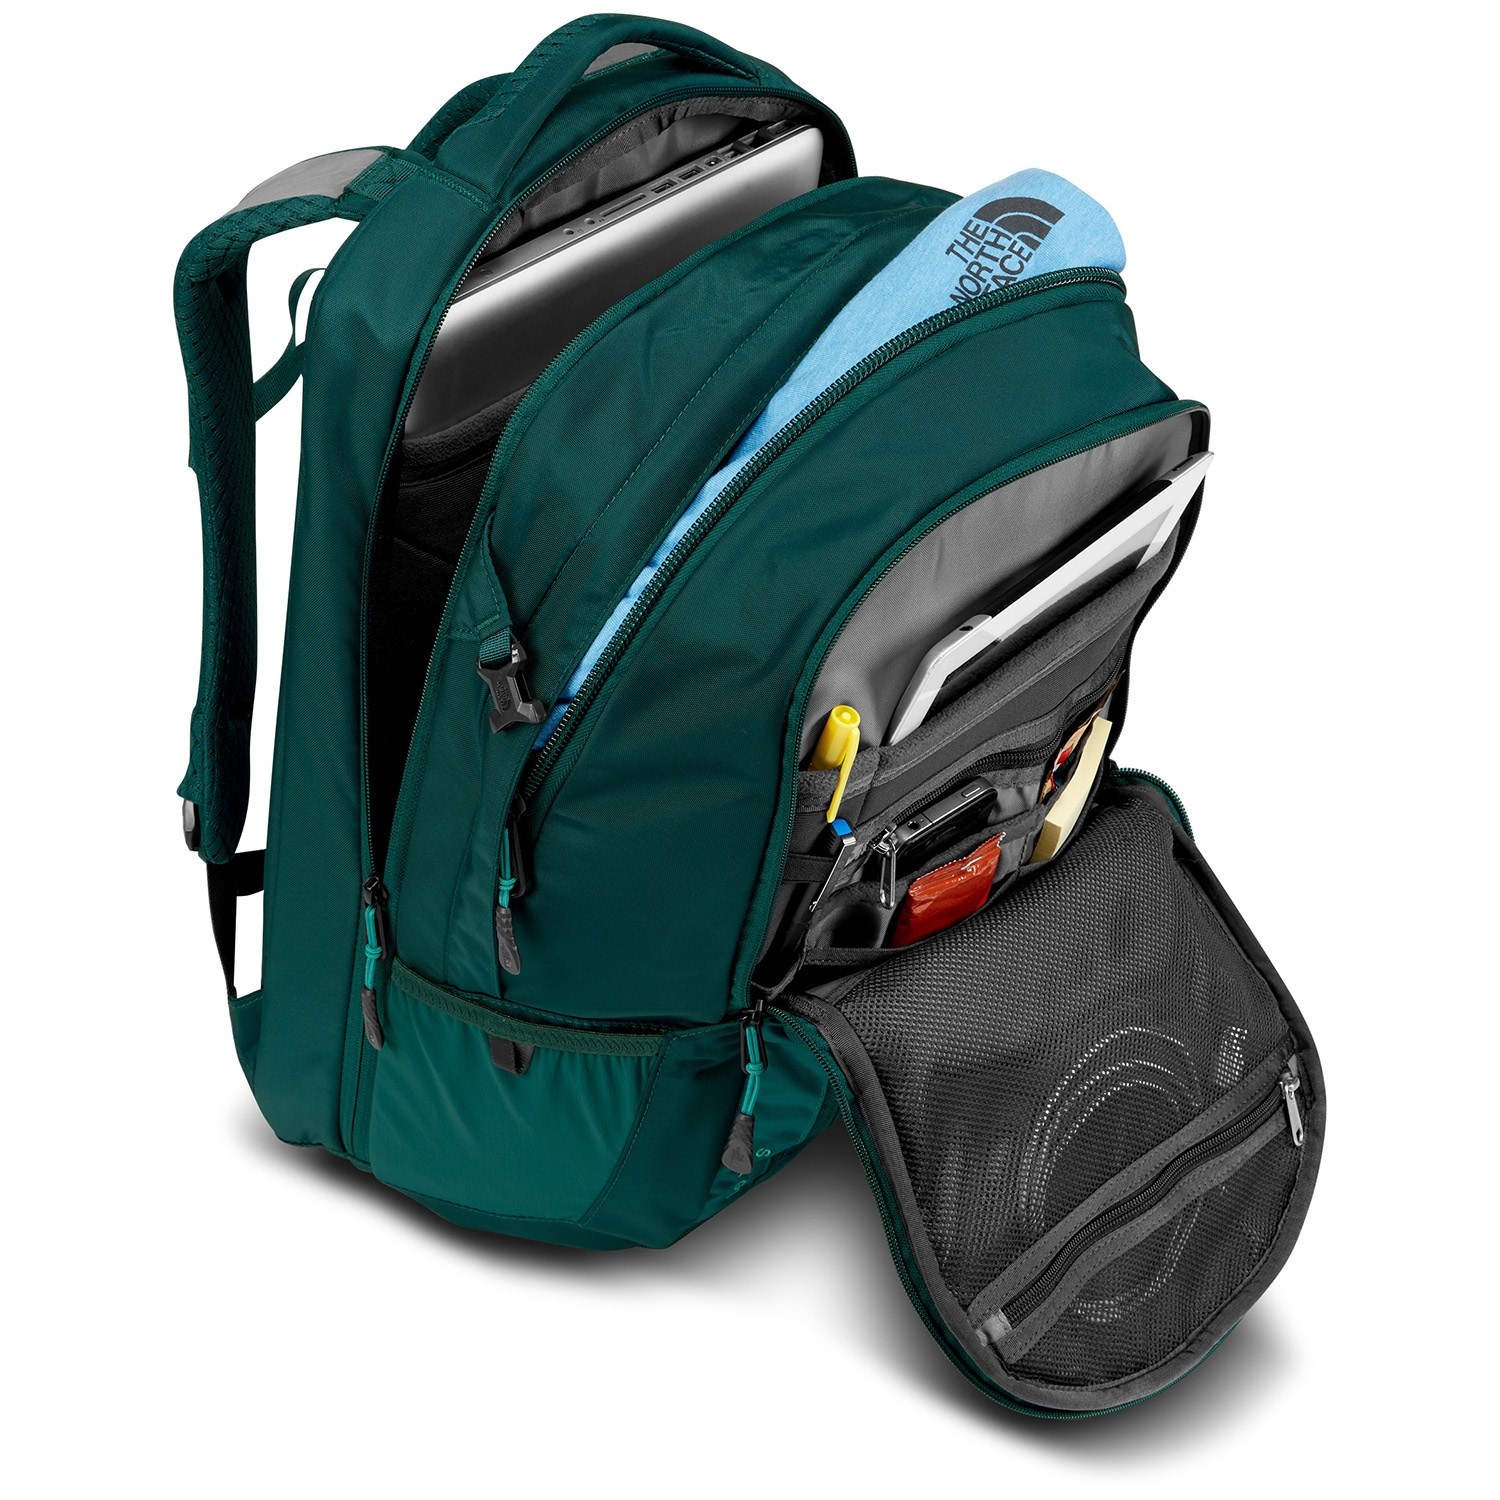 b33db3cd4 The North Face Surge Backpack - Women's